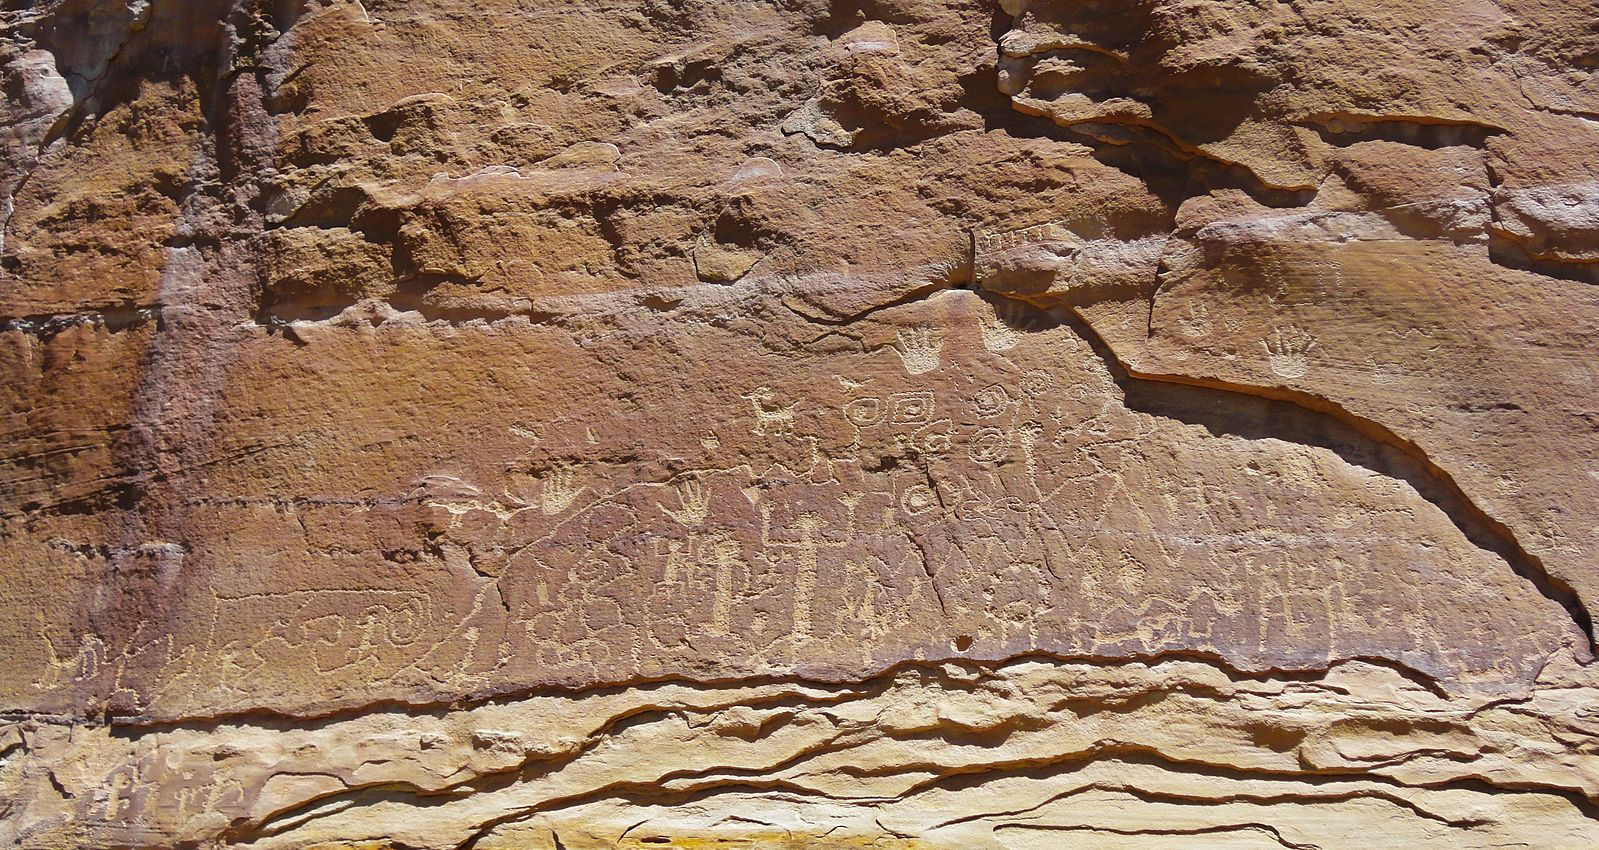 Petroglyph_Point_at_Mesa_Verde_National_Park_by_RO